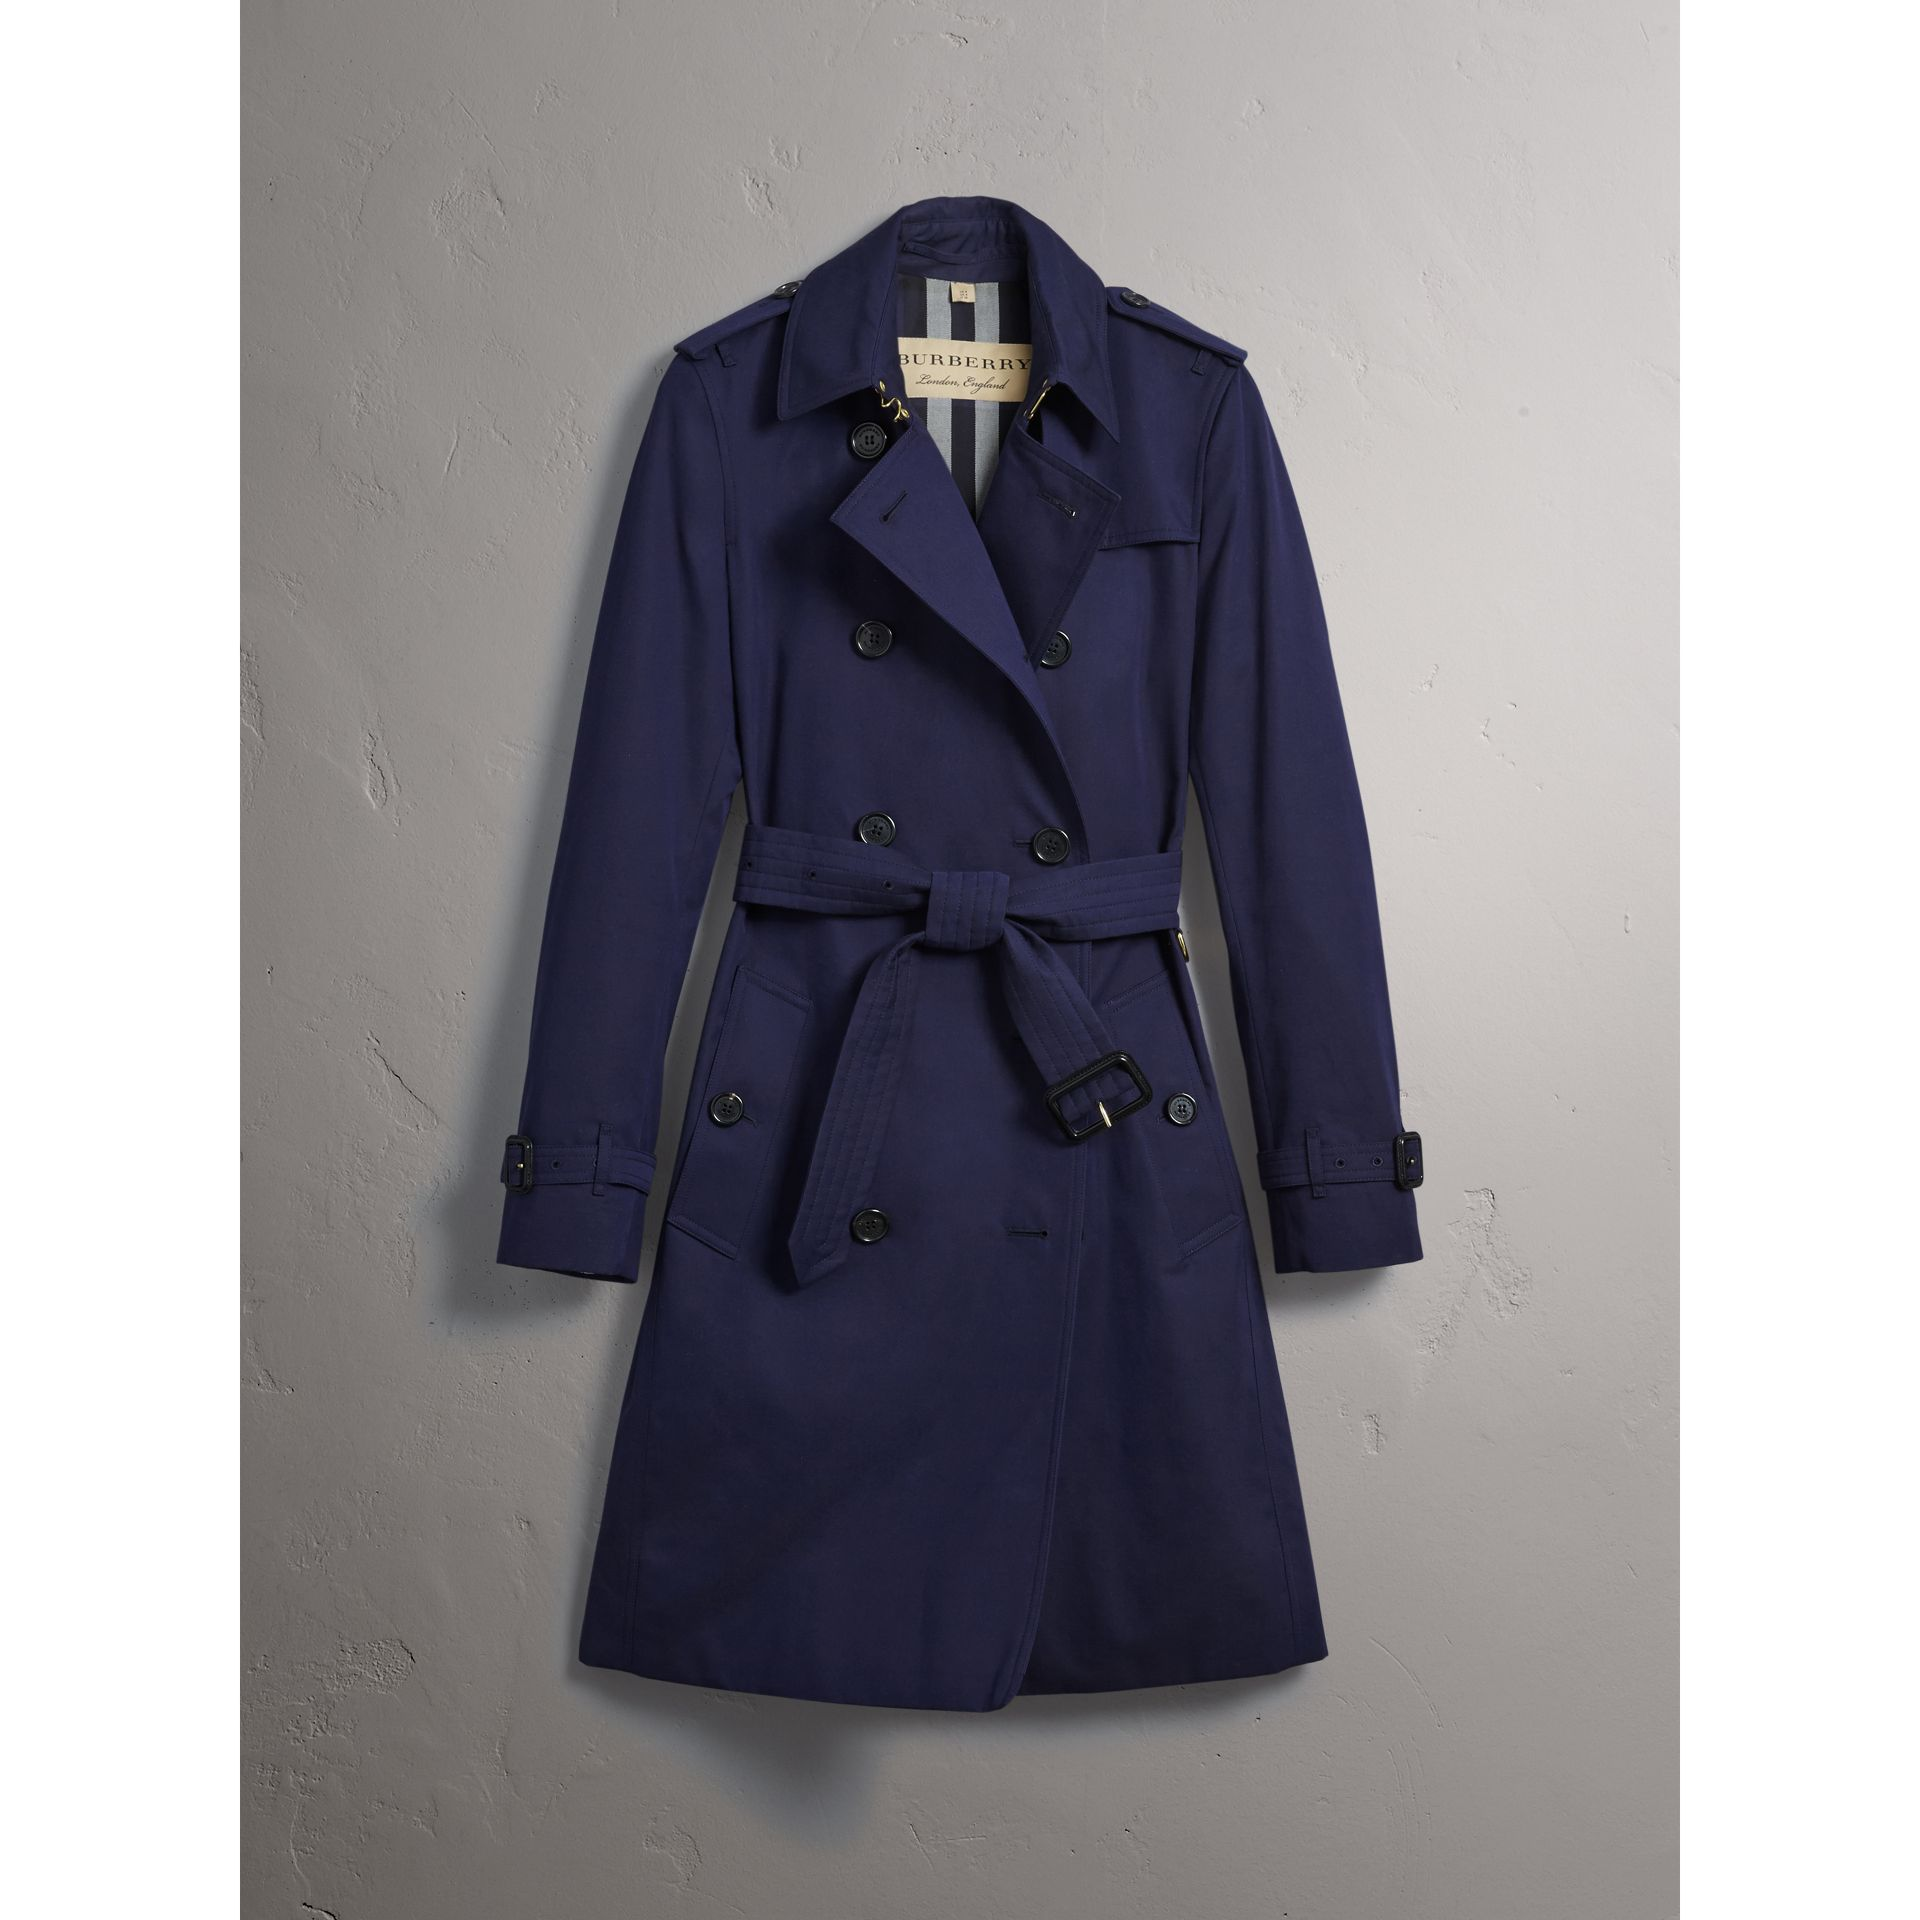 Trench-coat en gabardine de coton (Myrtille) - Femme | Burberry - photo de la galerie 3